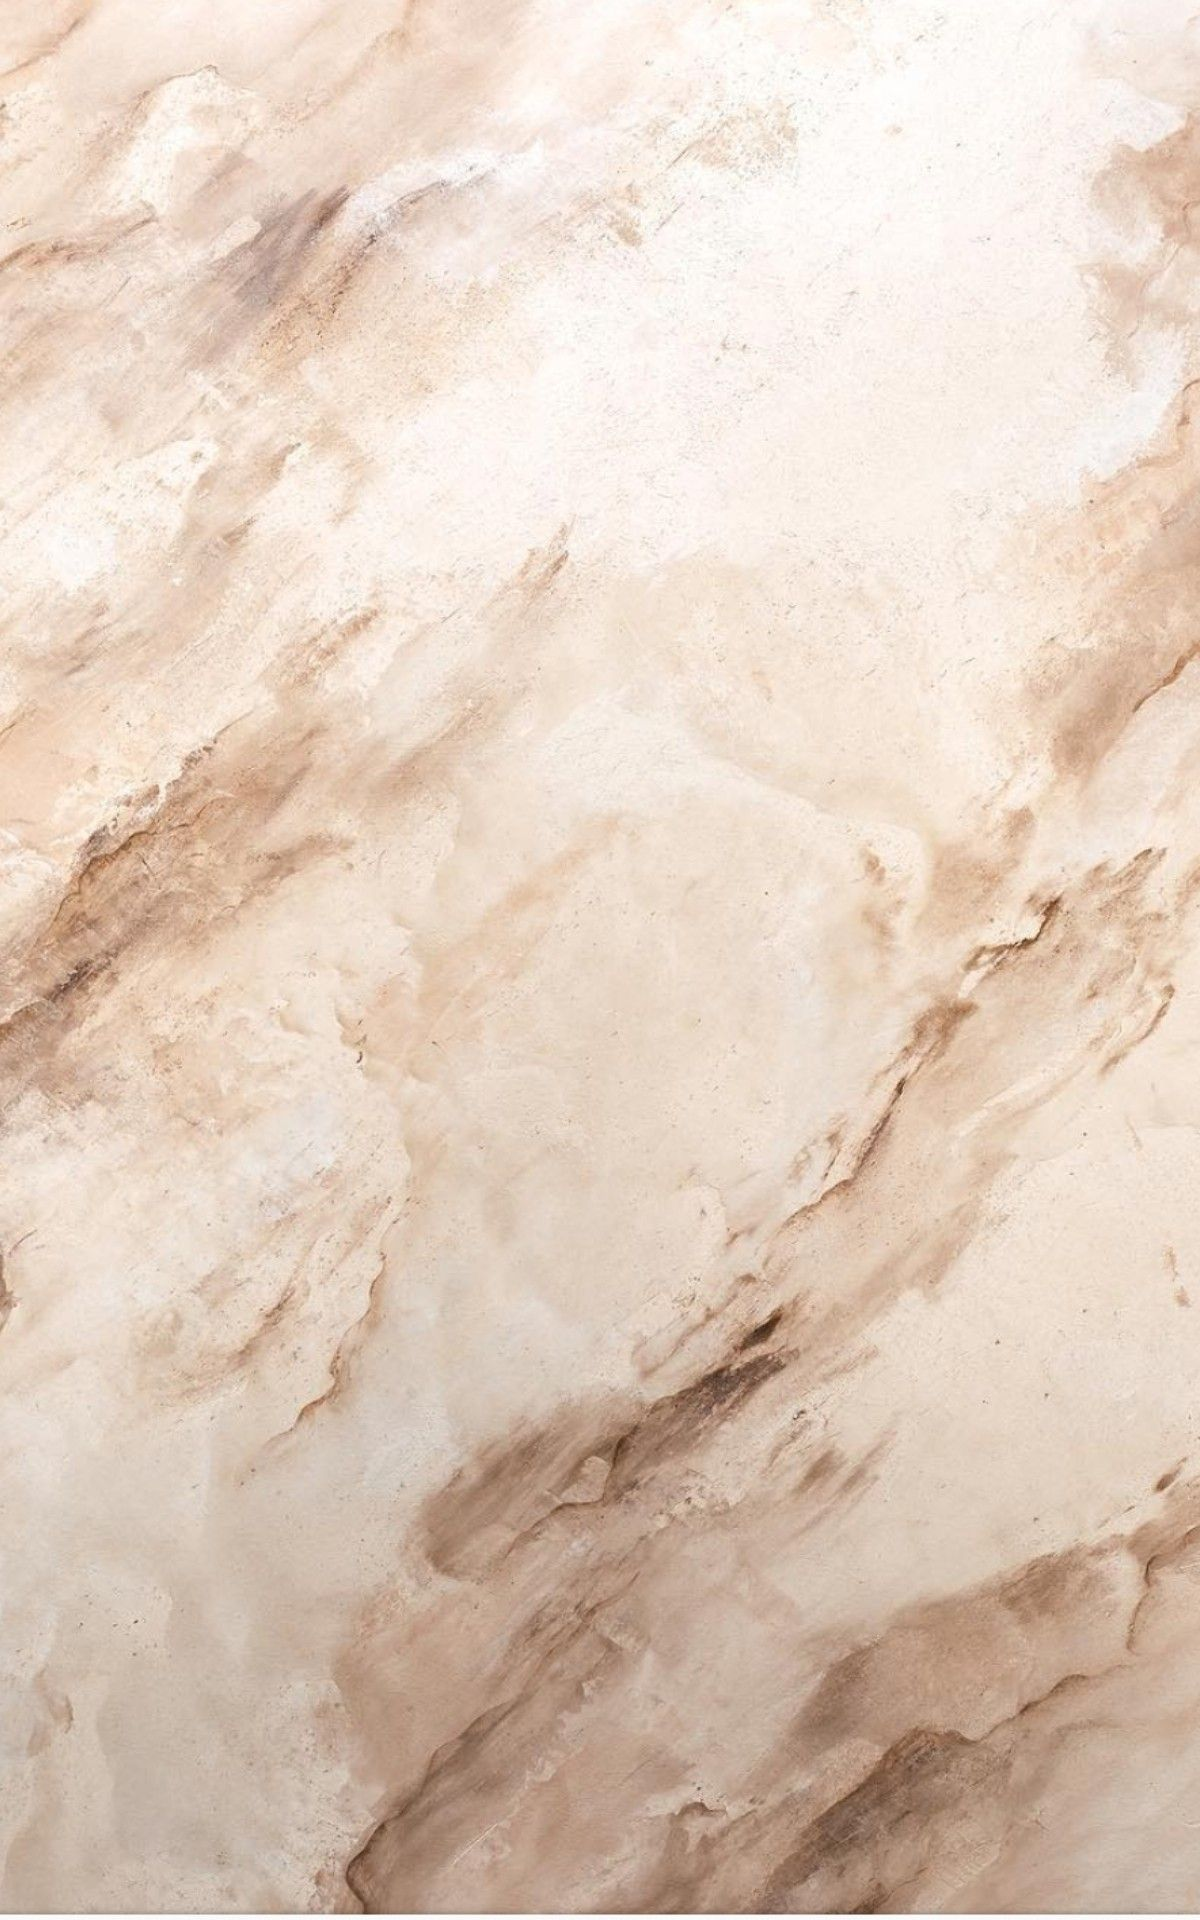 Pin By Mary Presley On Marble Beige Wallpaper Beige Aesthetic Iphone Background Wallpaper